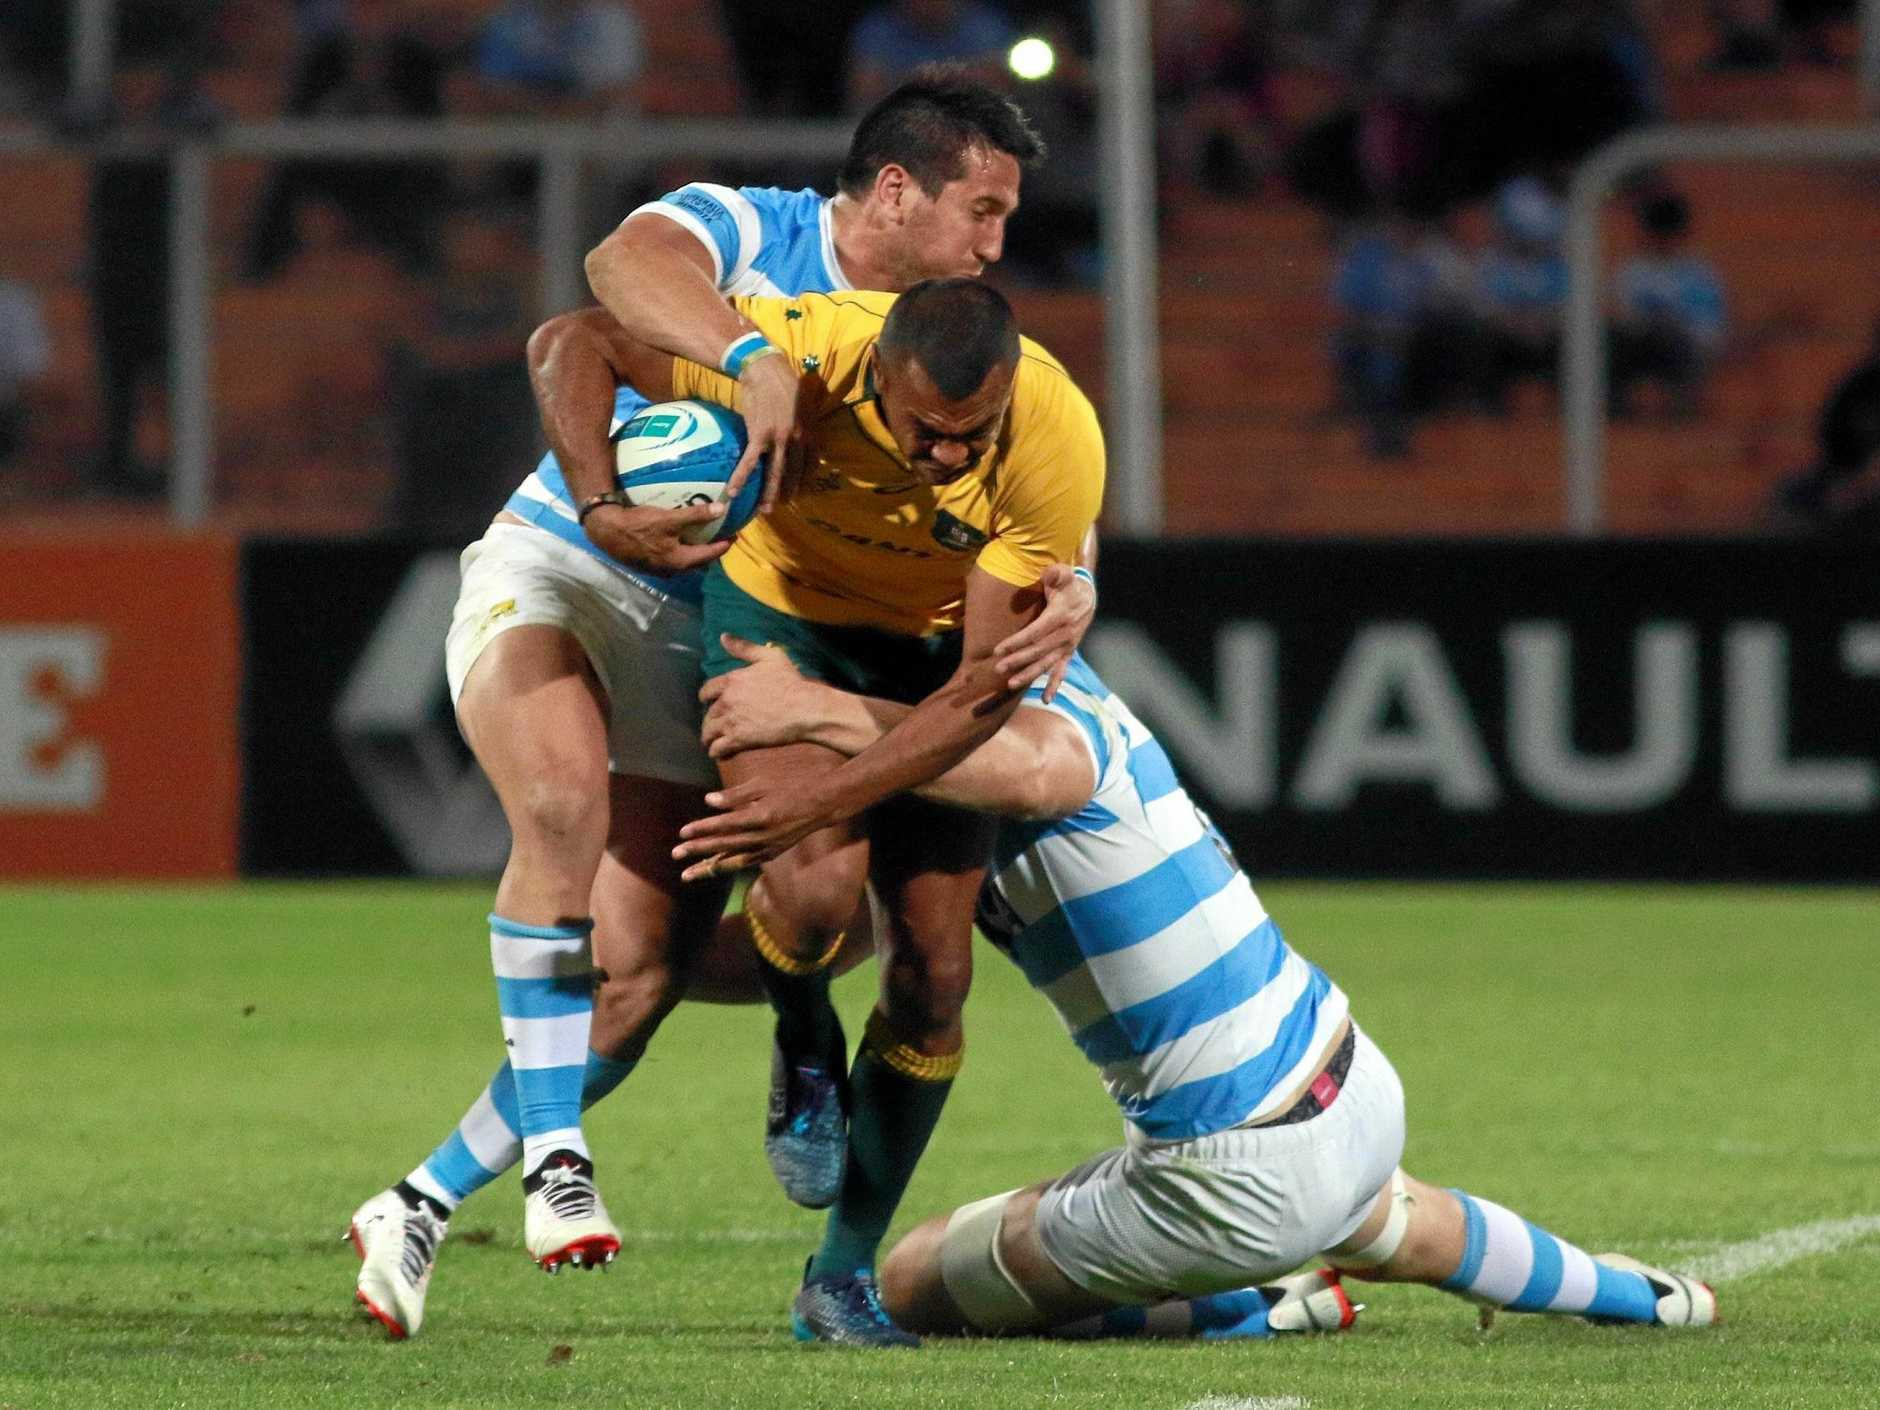 epa06251481 Wallabies' Kurtley Beale (C) in action against Pumas during their match of the Rugby Championship at Malvinas Argentinas Stadium, in Mendoza, Argentina, 07 October 2017.  EPA/PACHY REYNOSO